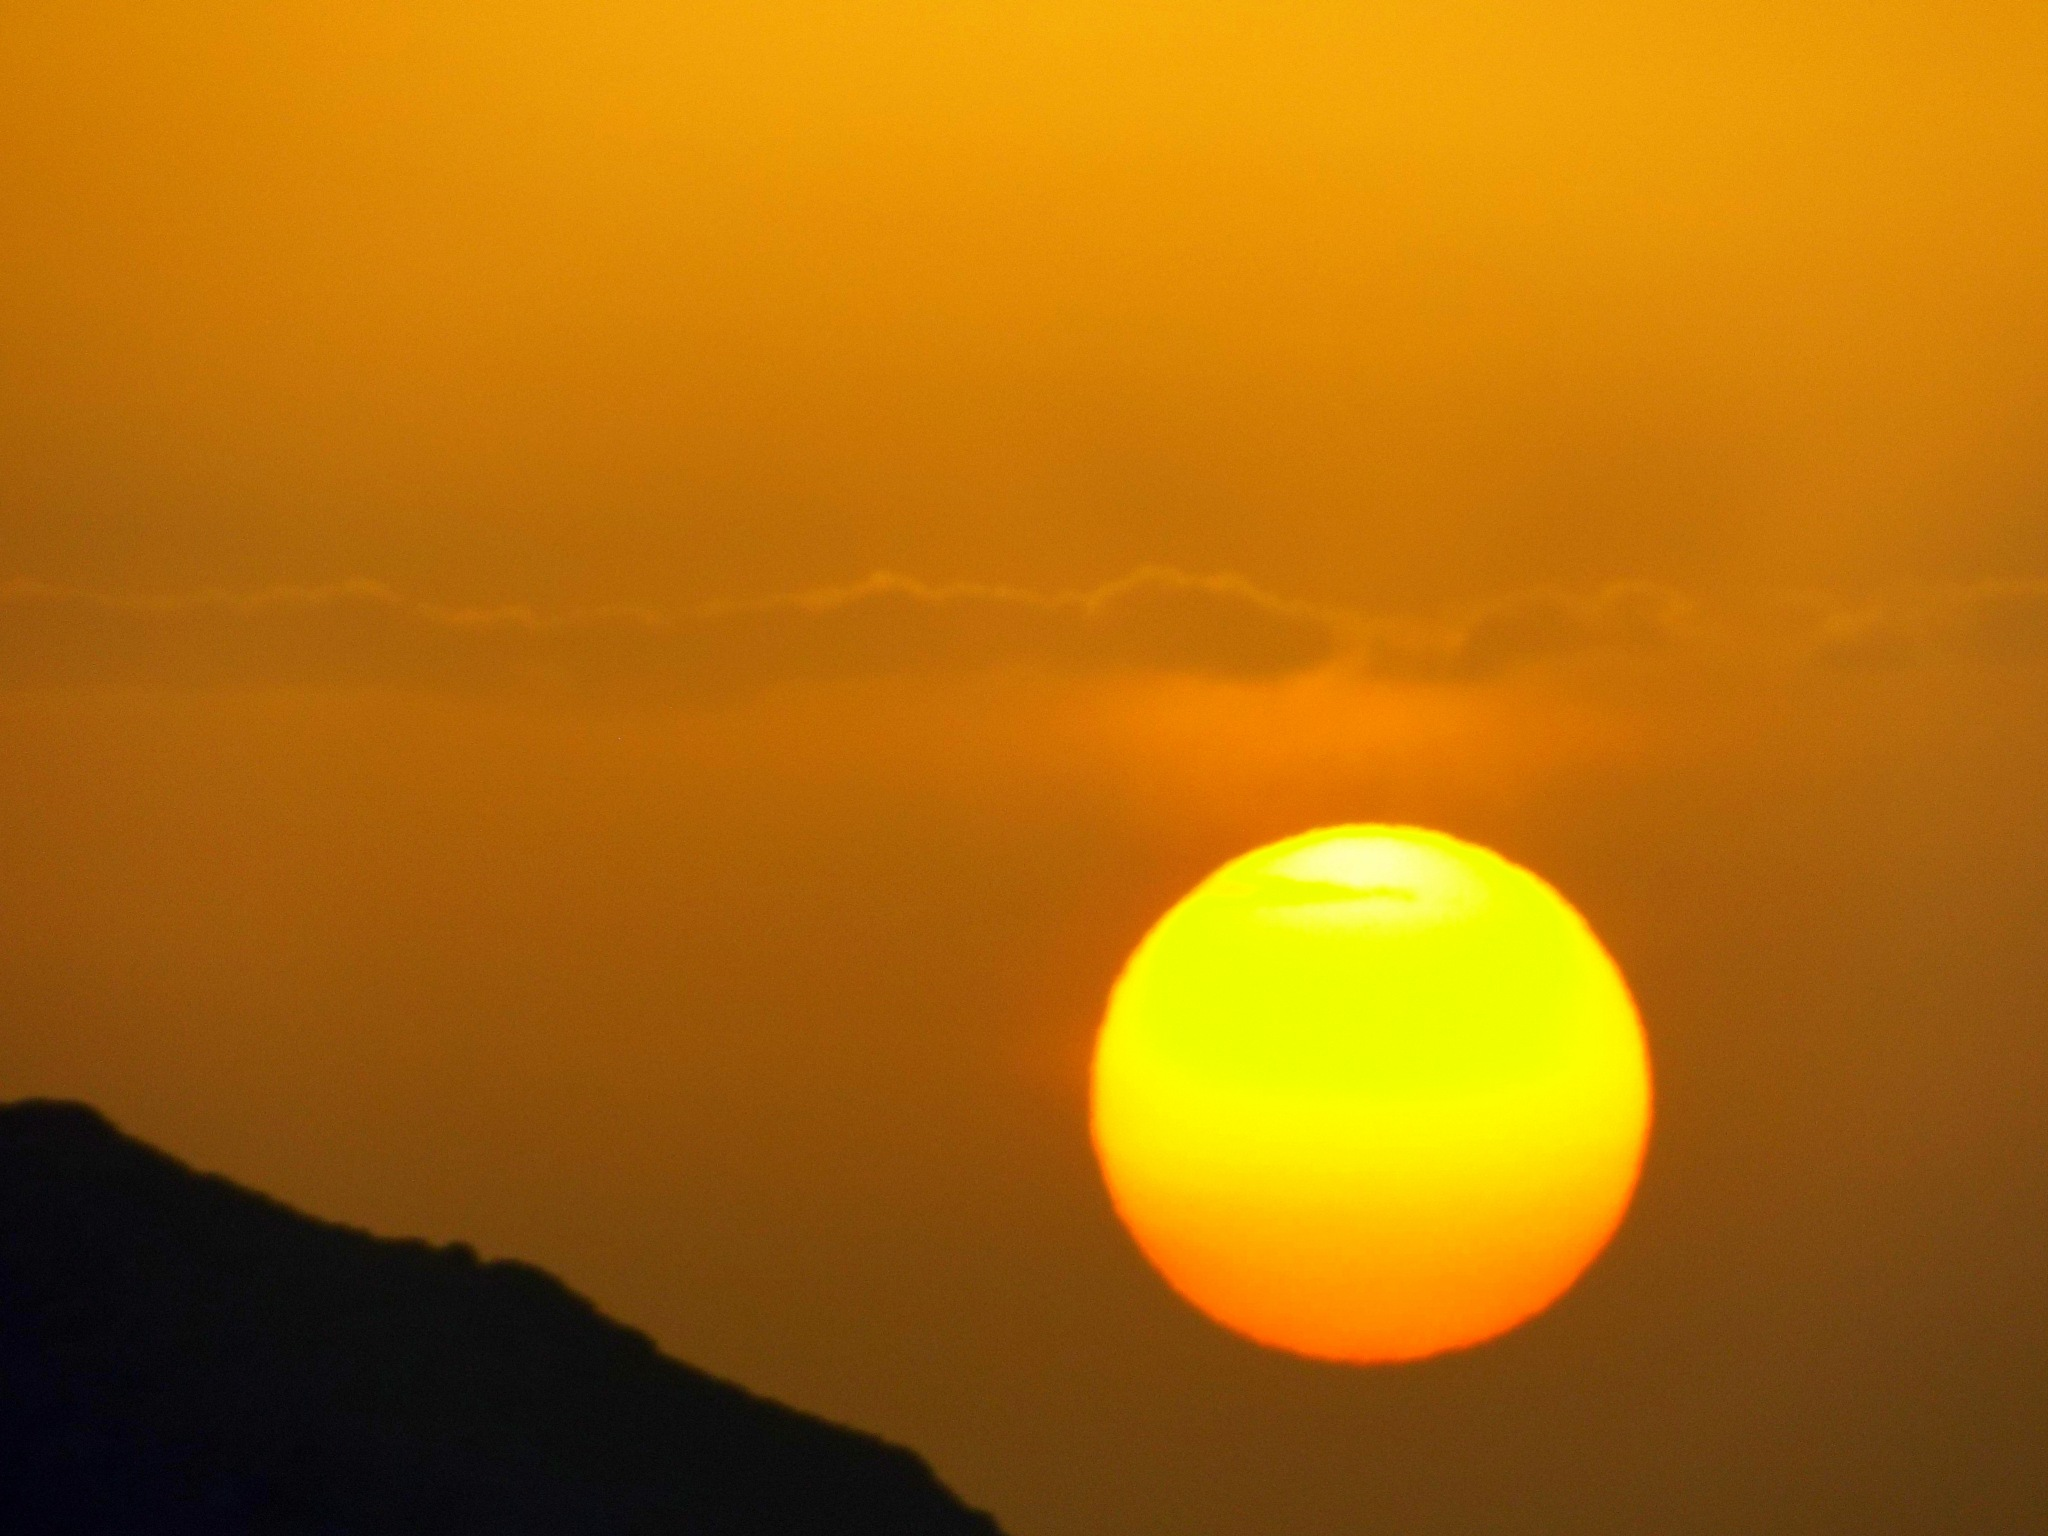 SETTING SUN , A CLOUDY DAY, FROM MY BALCONY by Akin Saner